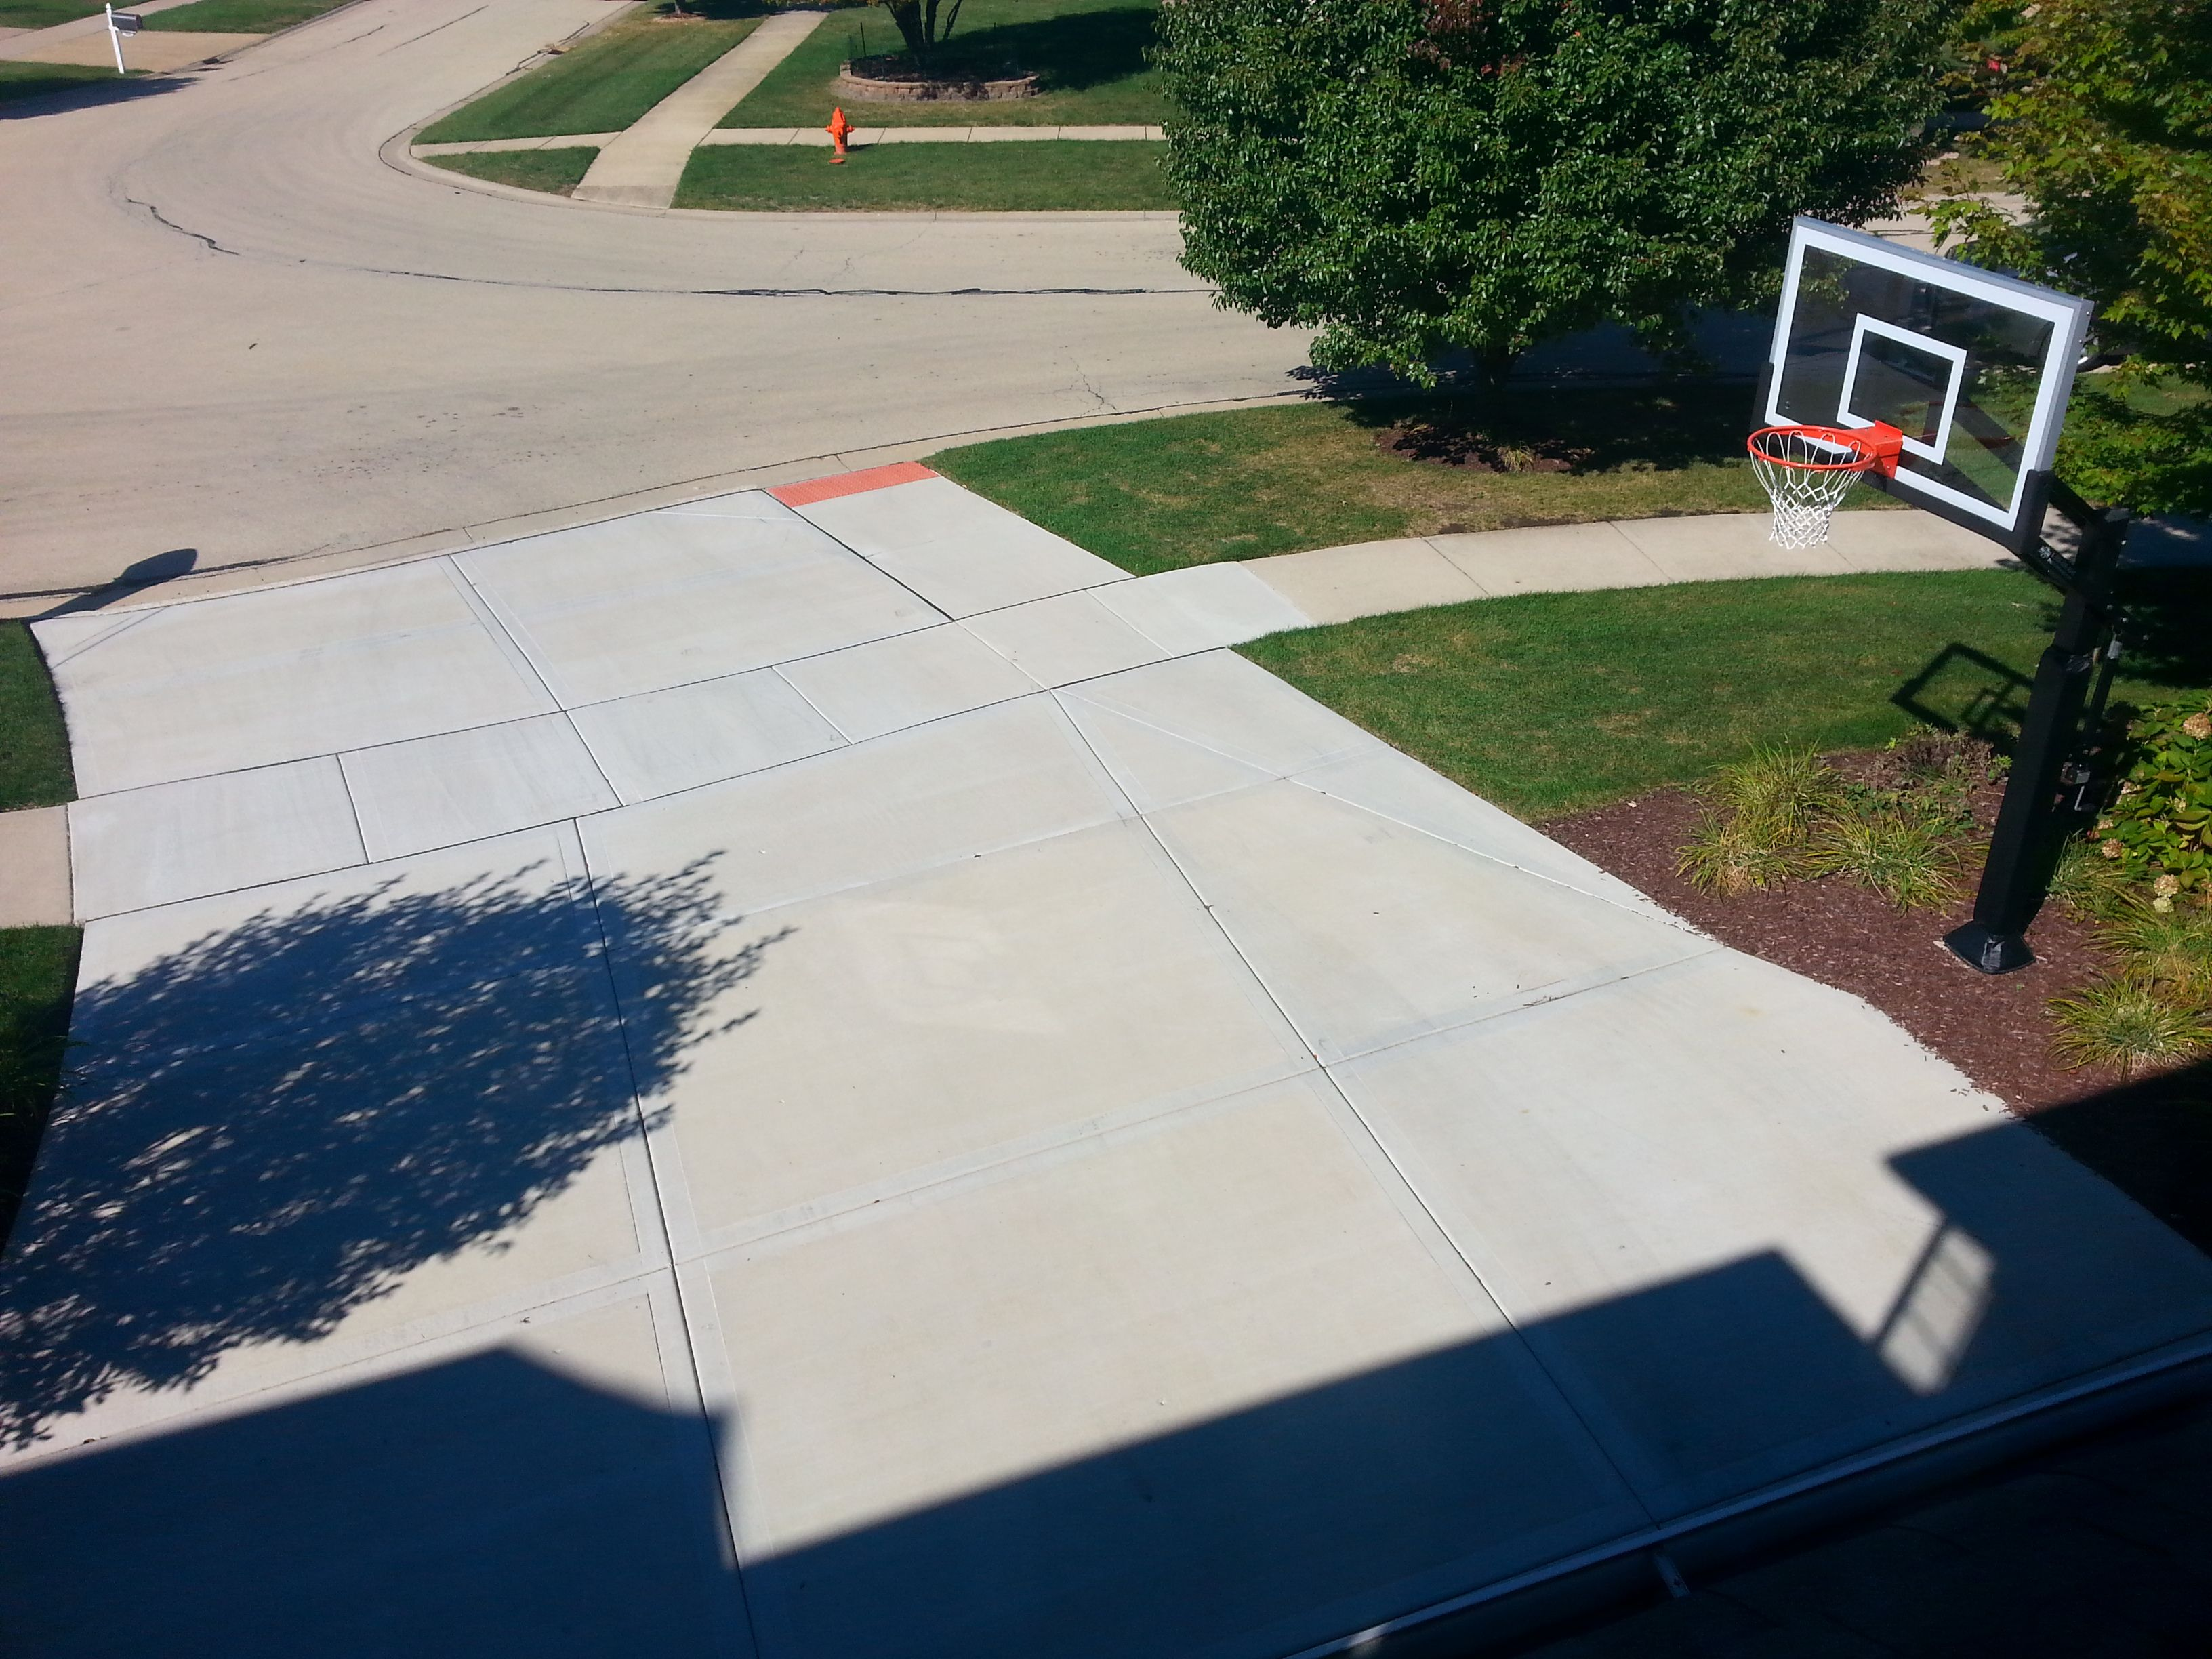 this birds eye view shows the pro dunk gold basketball system